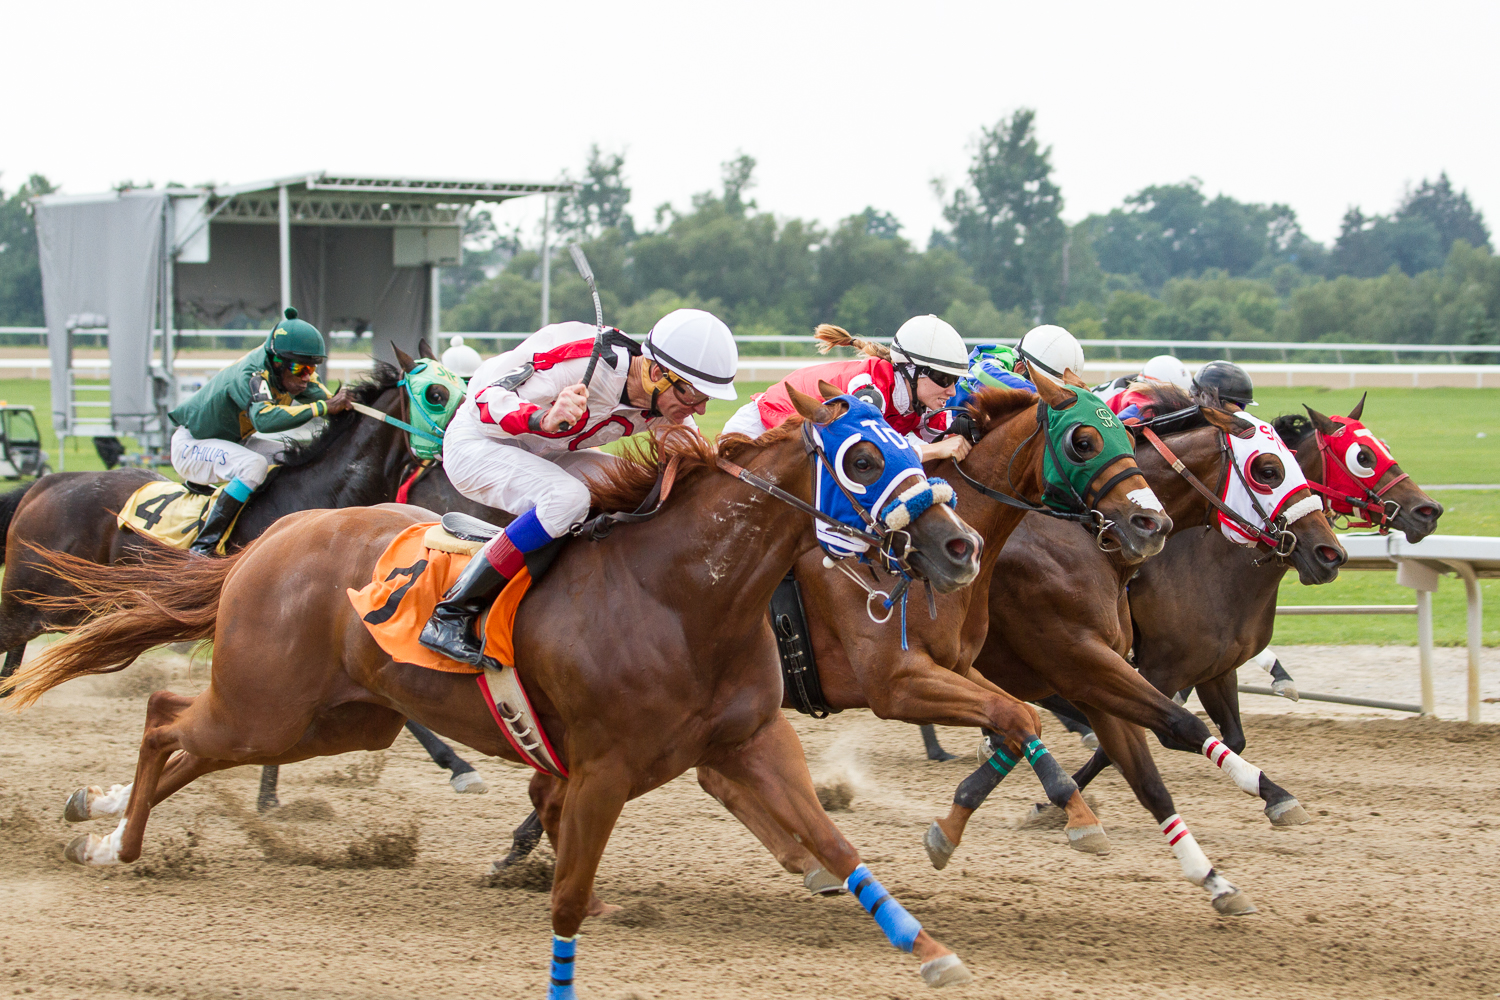 50 years of Travel Day at Ajax Downs; $50,000 Futurity for 2-year-olds